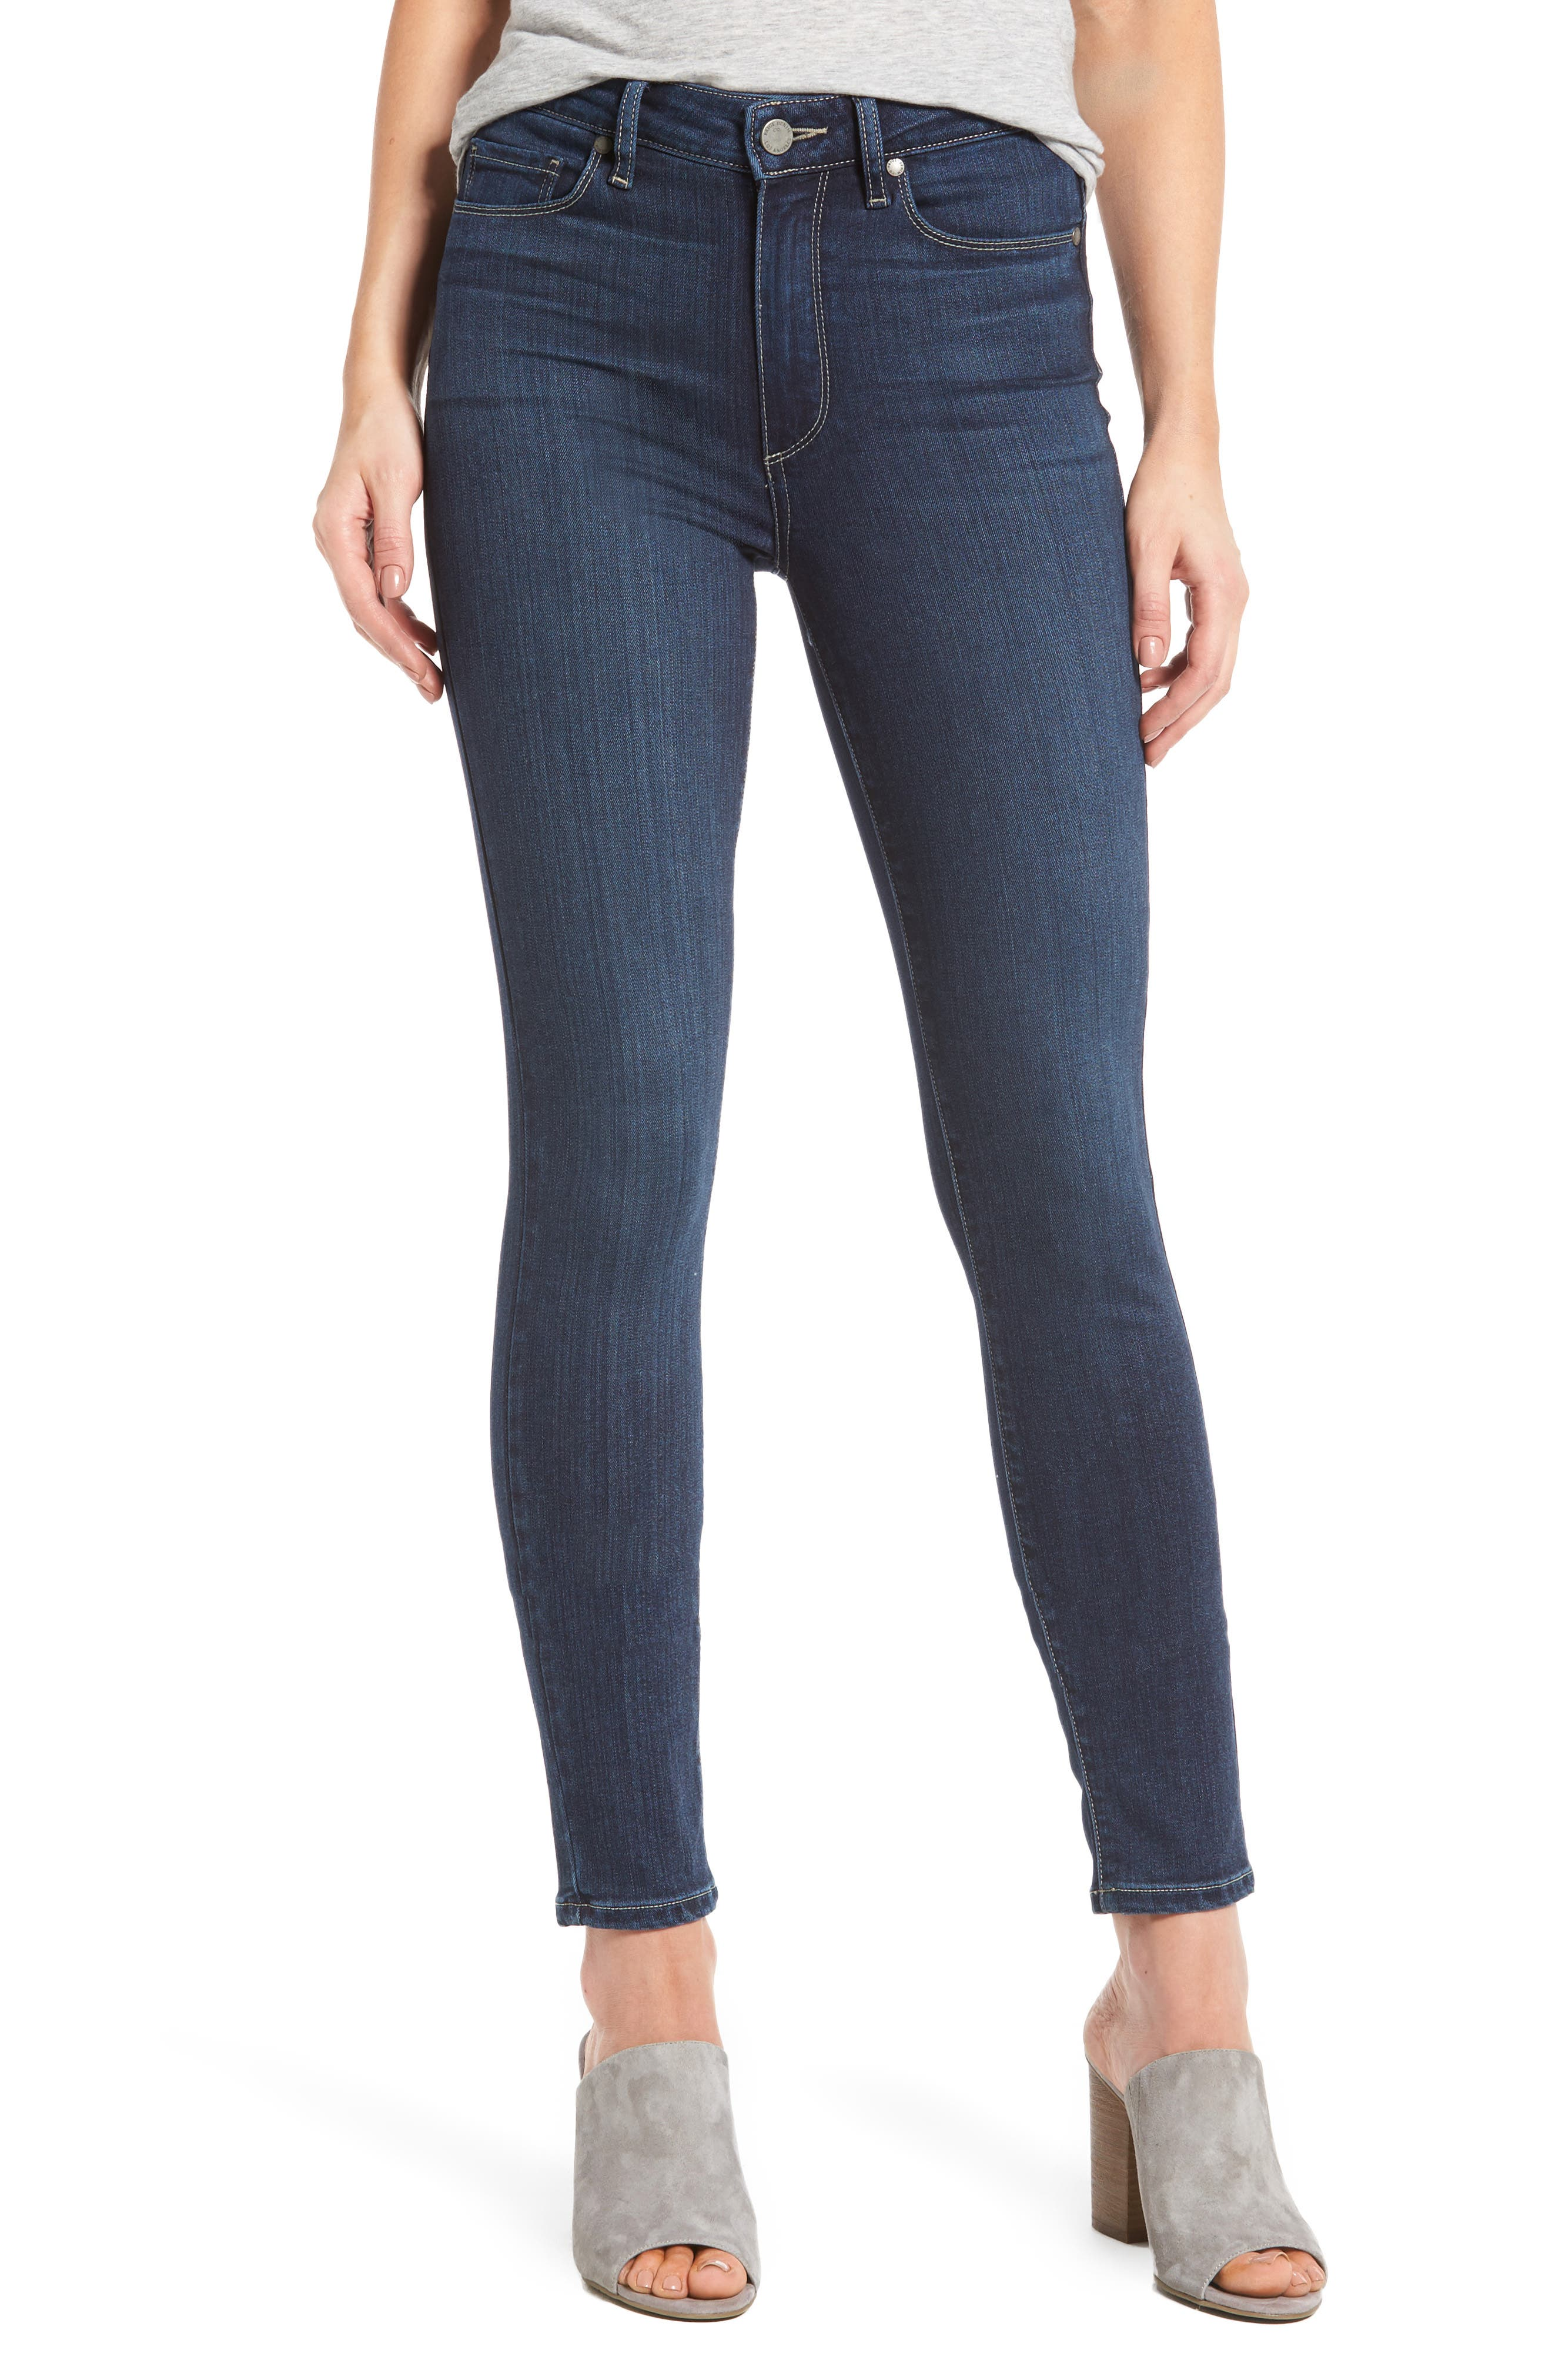 Transcend - Hoxton High Waist Ankle Skinny Jeans,                         Main,                         color, 400